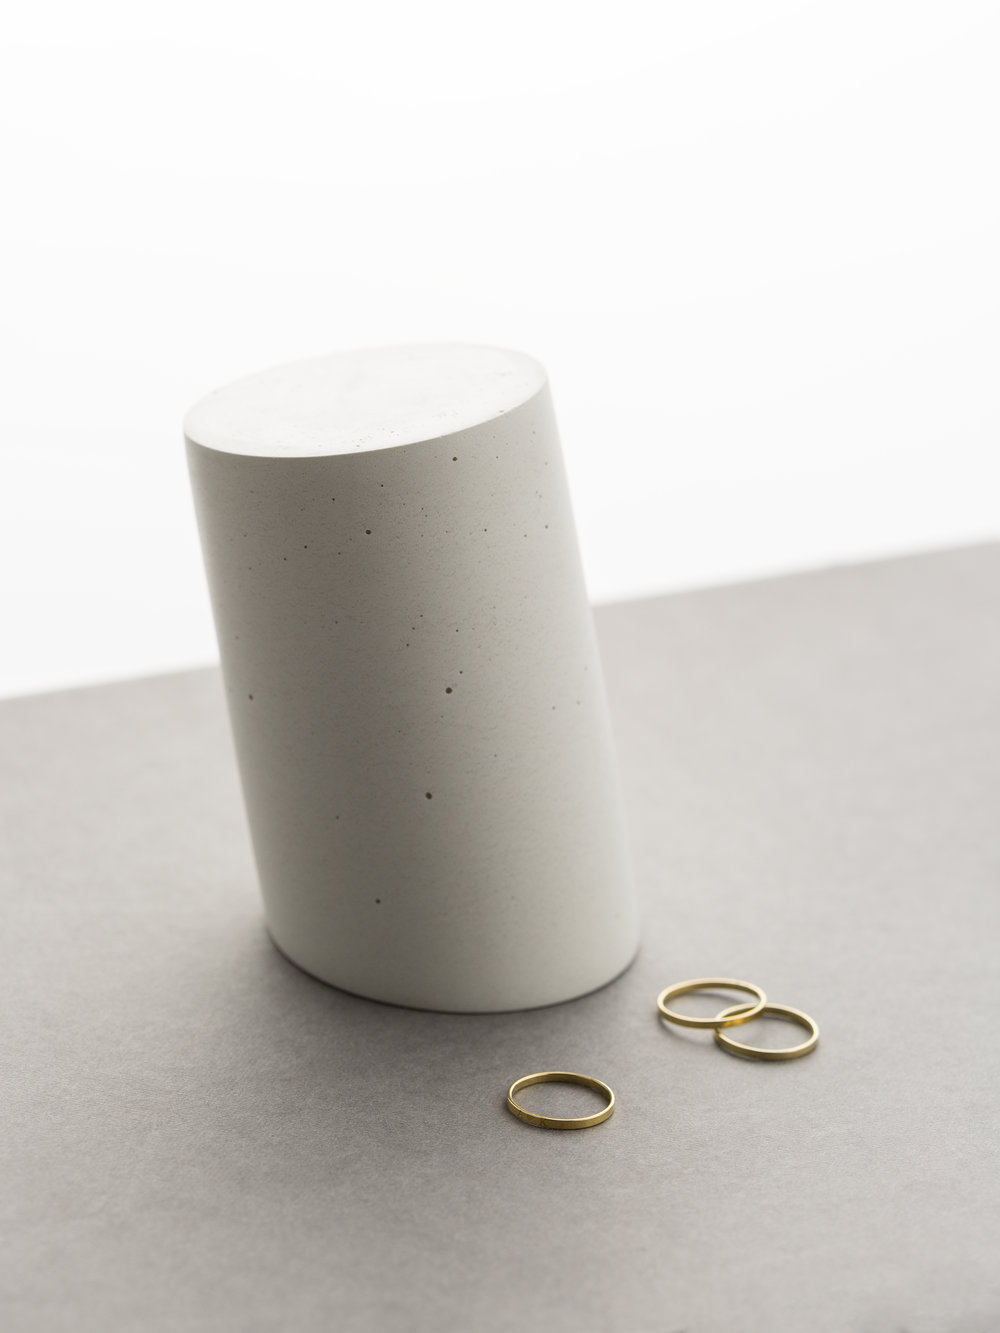 Concrete Vessel: IN.SEK, Rings: RHONE BAND by GLDN